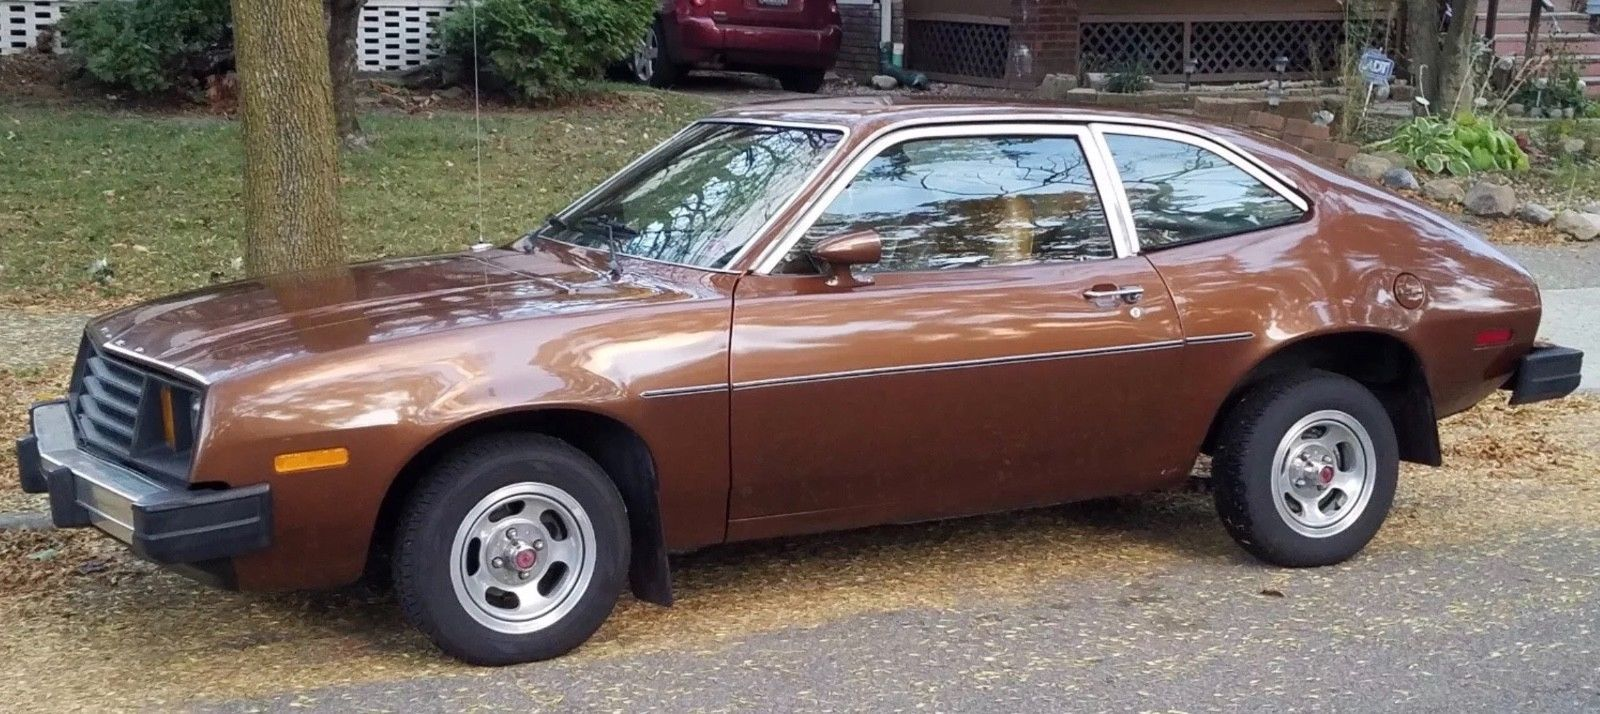 Cool amazing 1980 ford other 1980 ford pinto 69943 miles 2017 cool amazing 1980 ford other 1980 ford pinto 69943 miles 2017 2018 check more sciox Gallery